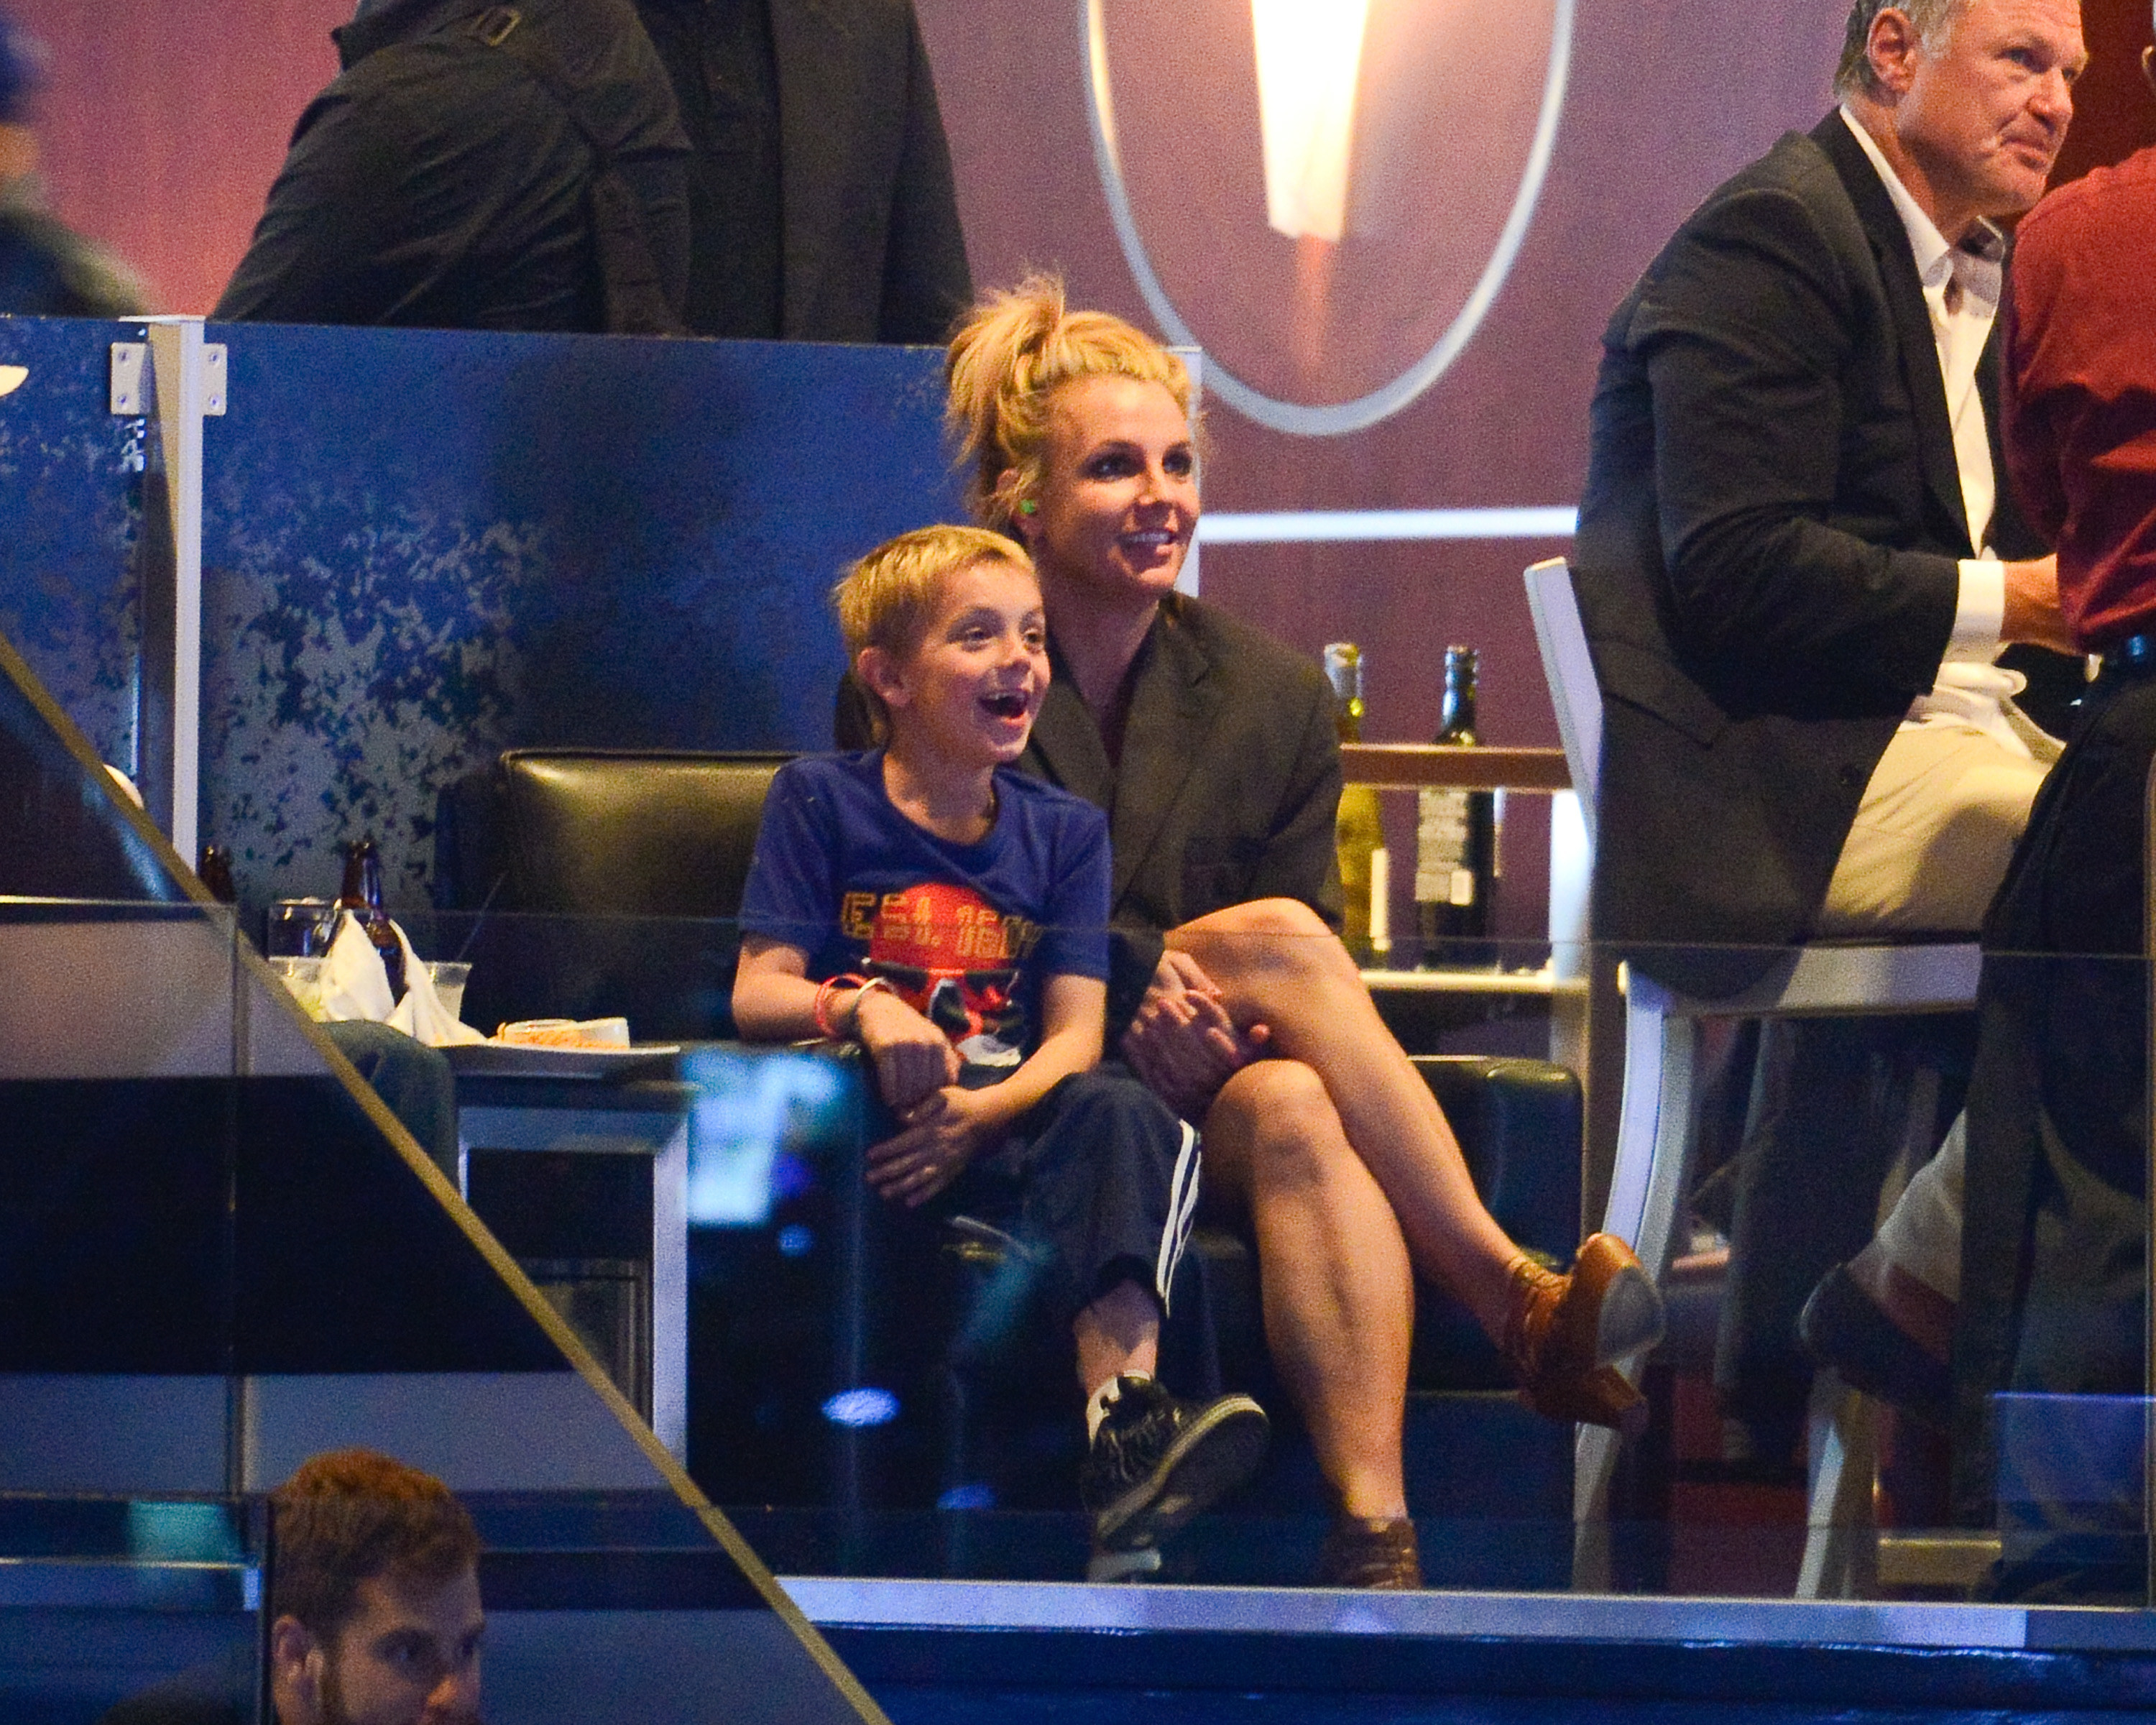 Britney Spears and her son Jayden James Federline attend a hockey game between the New York Rangers and the Los Angeles Kings in Game Two of the 2014 NHL Stanley Cup Final at the Staples Center on June 7, 2014 in Los Angeles, California